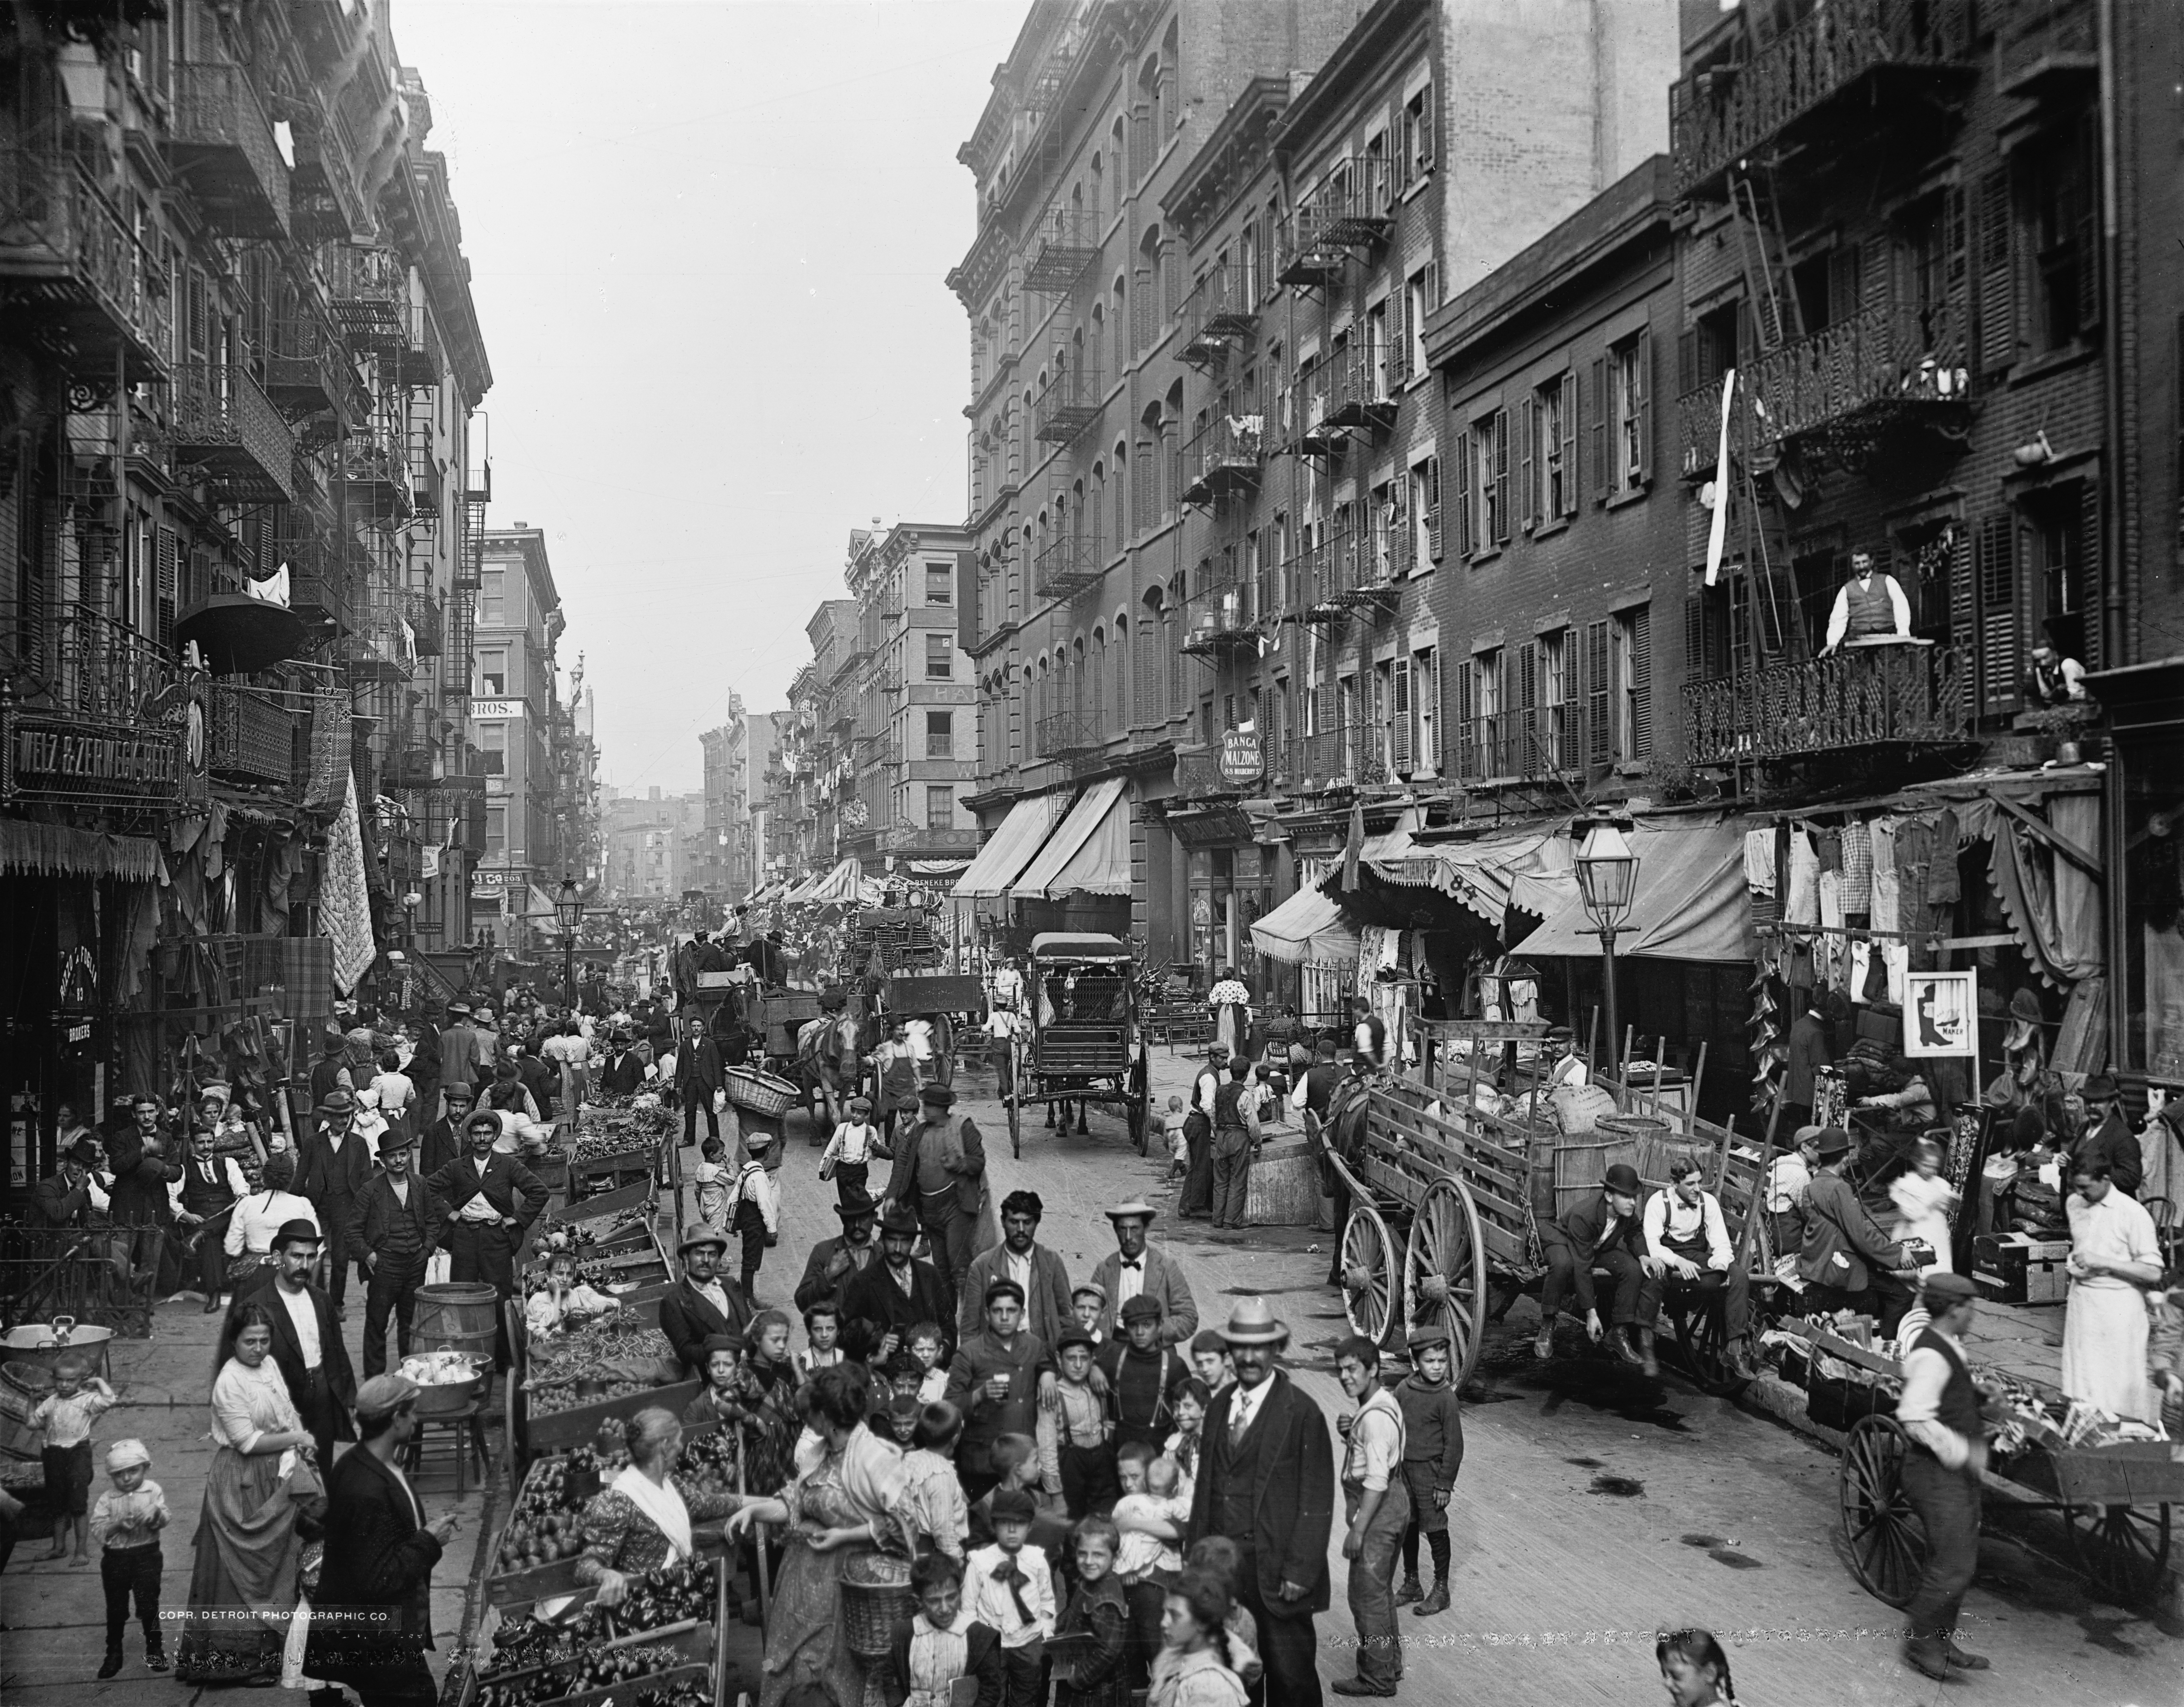 Mulberry_Street,_New_York_City_(LOC_det.4a08193).jpg